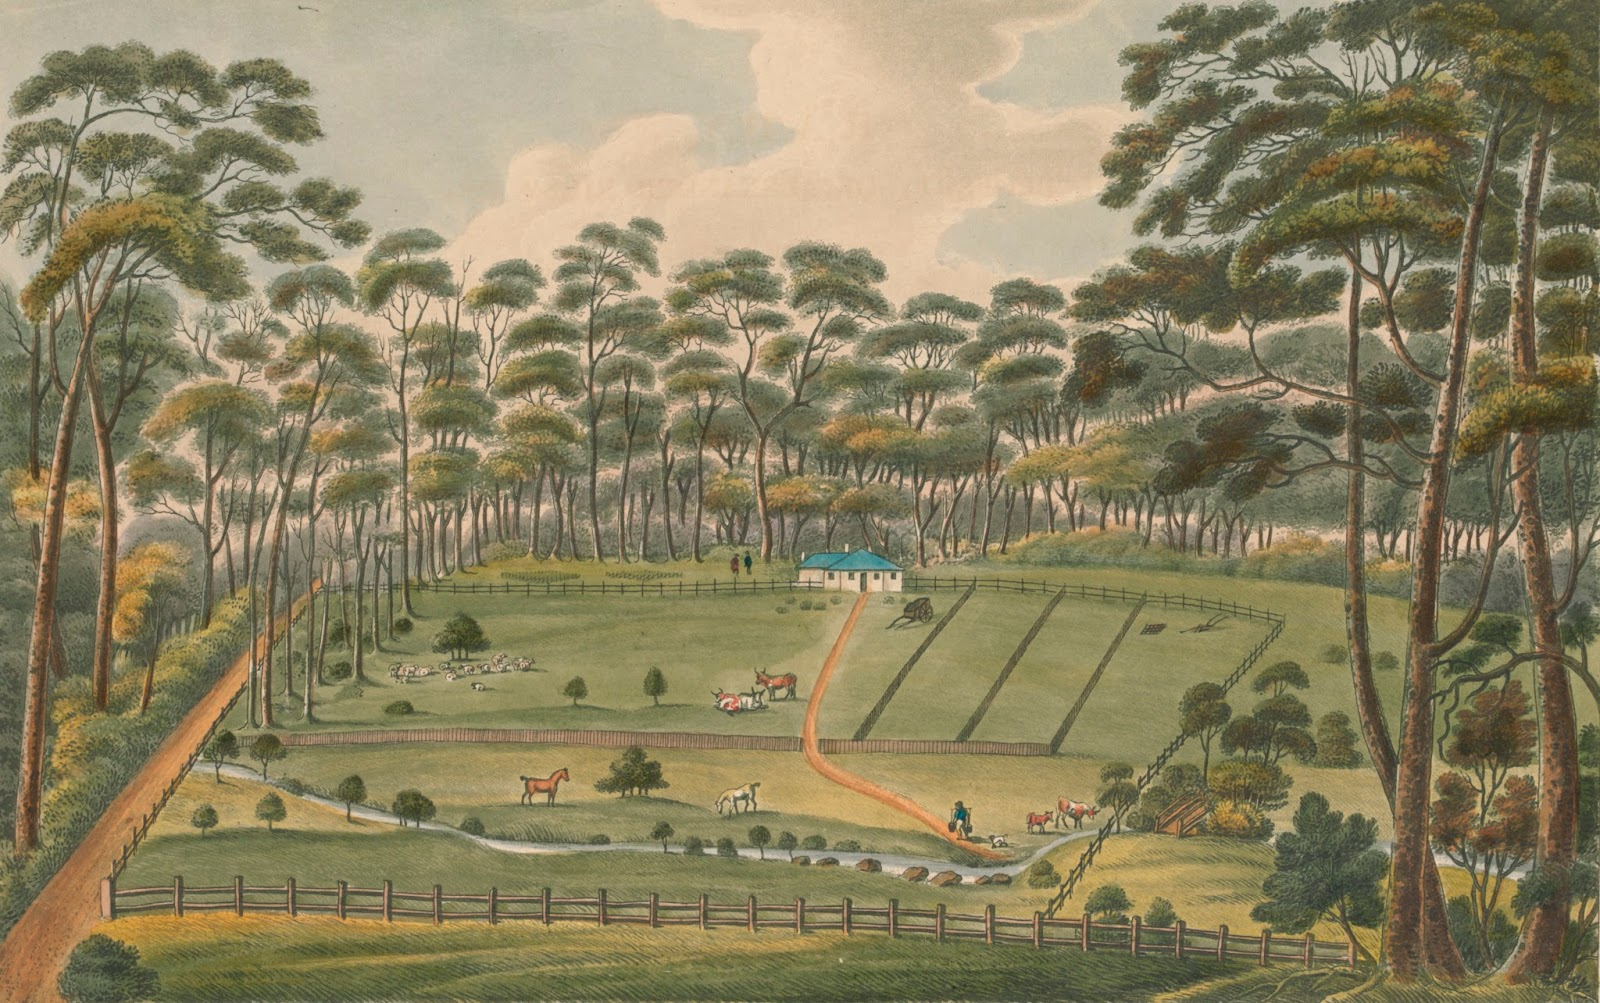 Raby. A Farm belonging to Alexander Riley Esqr. New South Wales 1825